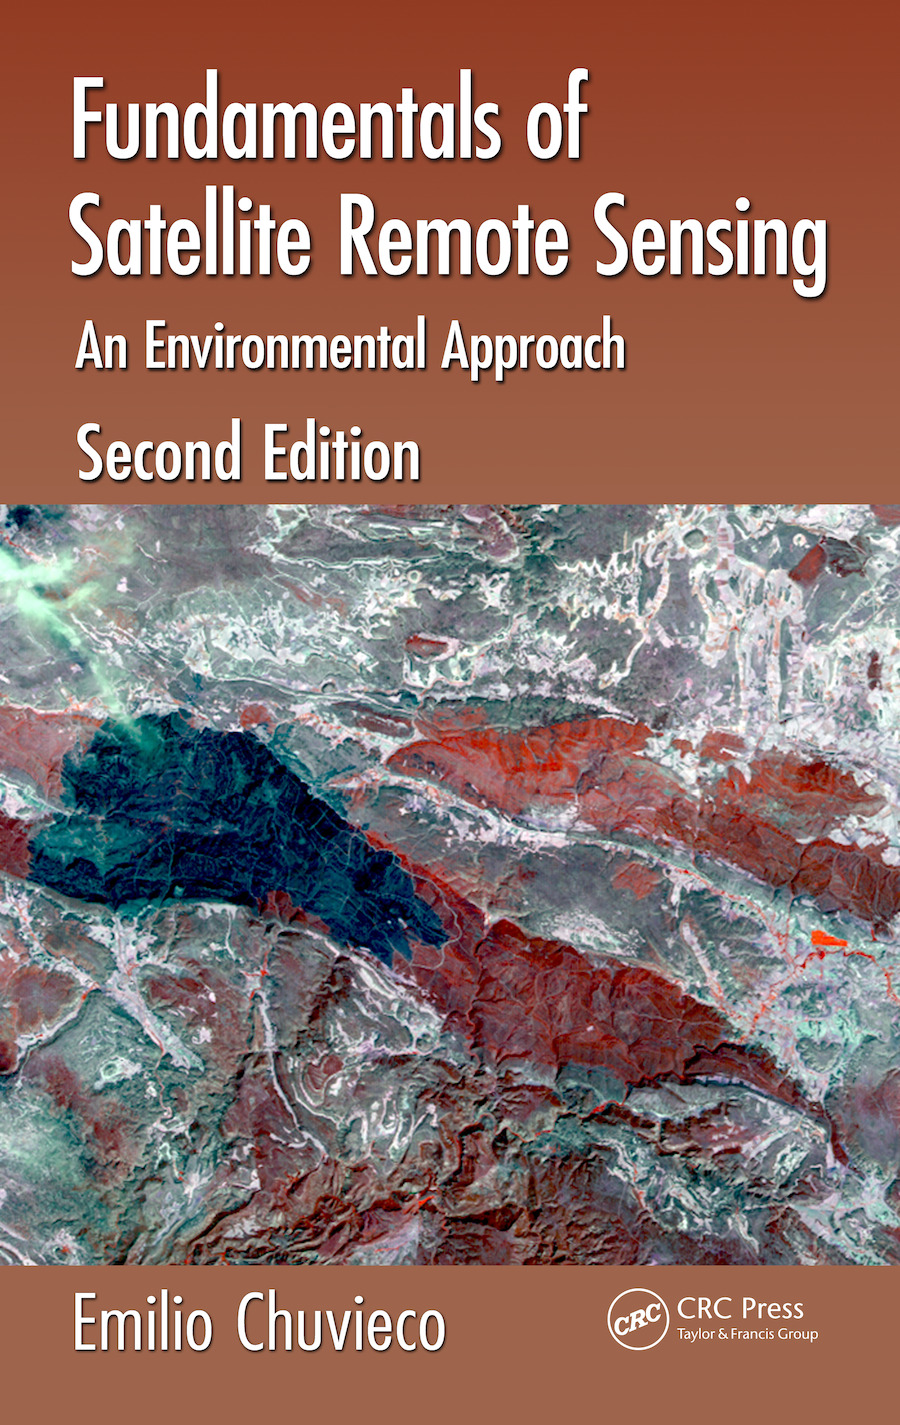 Fundamentals of Satellite Remote Sensing: An Environmental Approach, Second Edition book cover